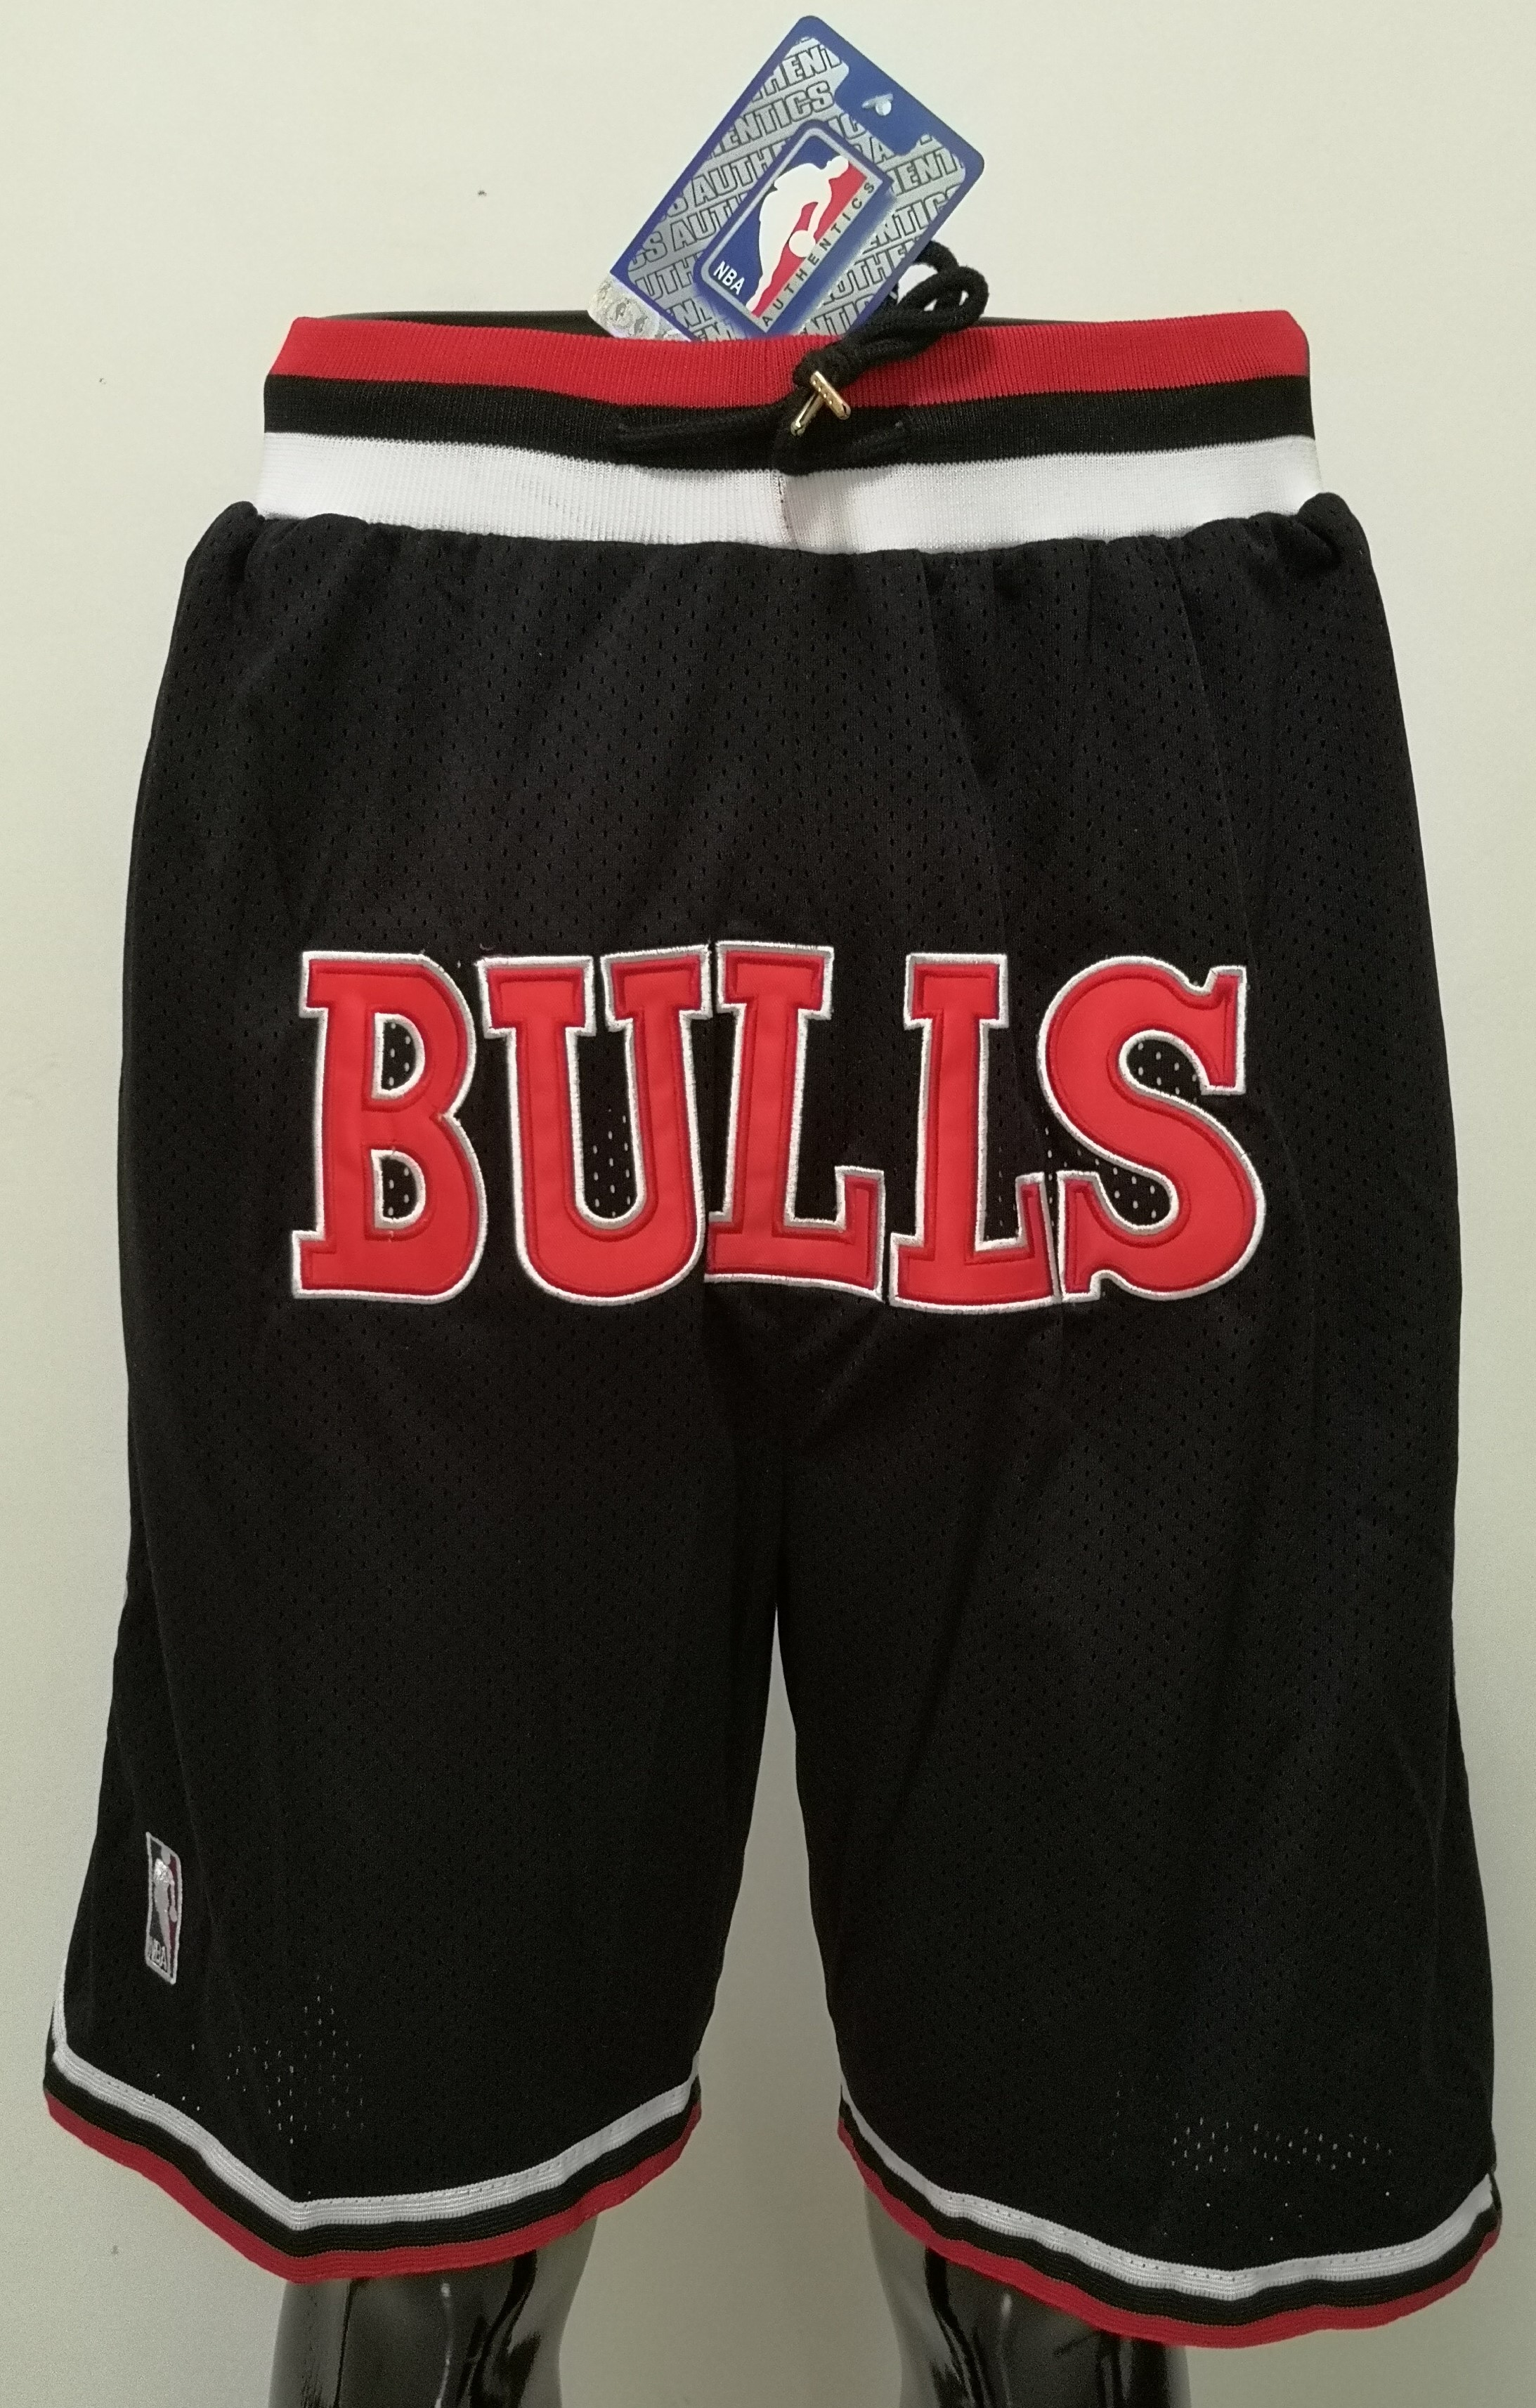 2020 Men NBA Chicago Bulls black shorts